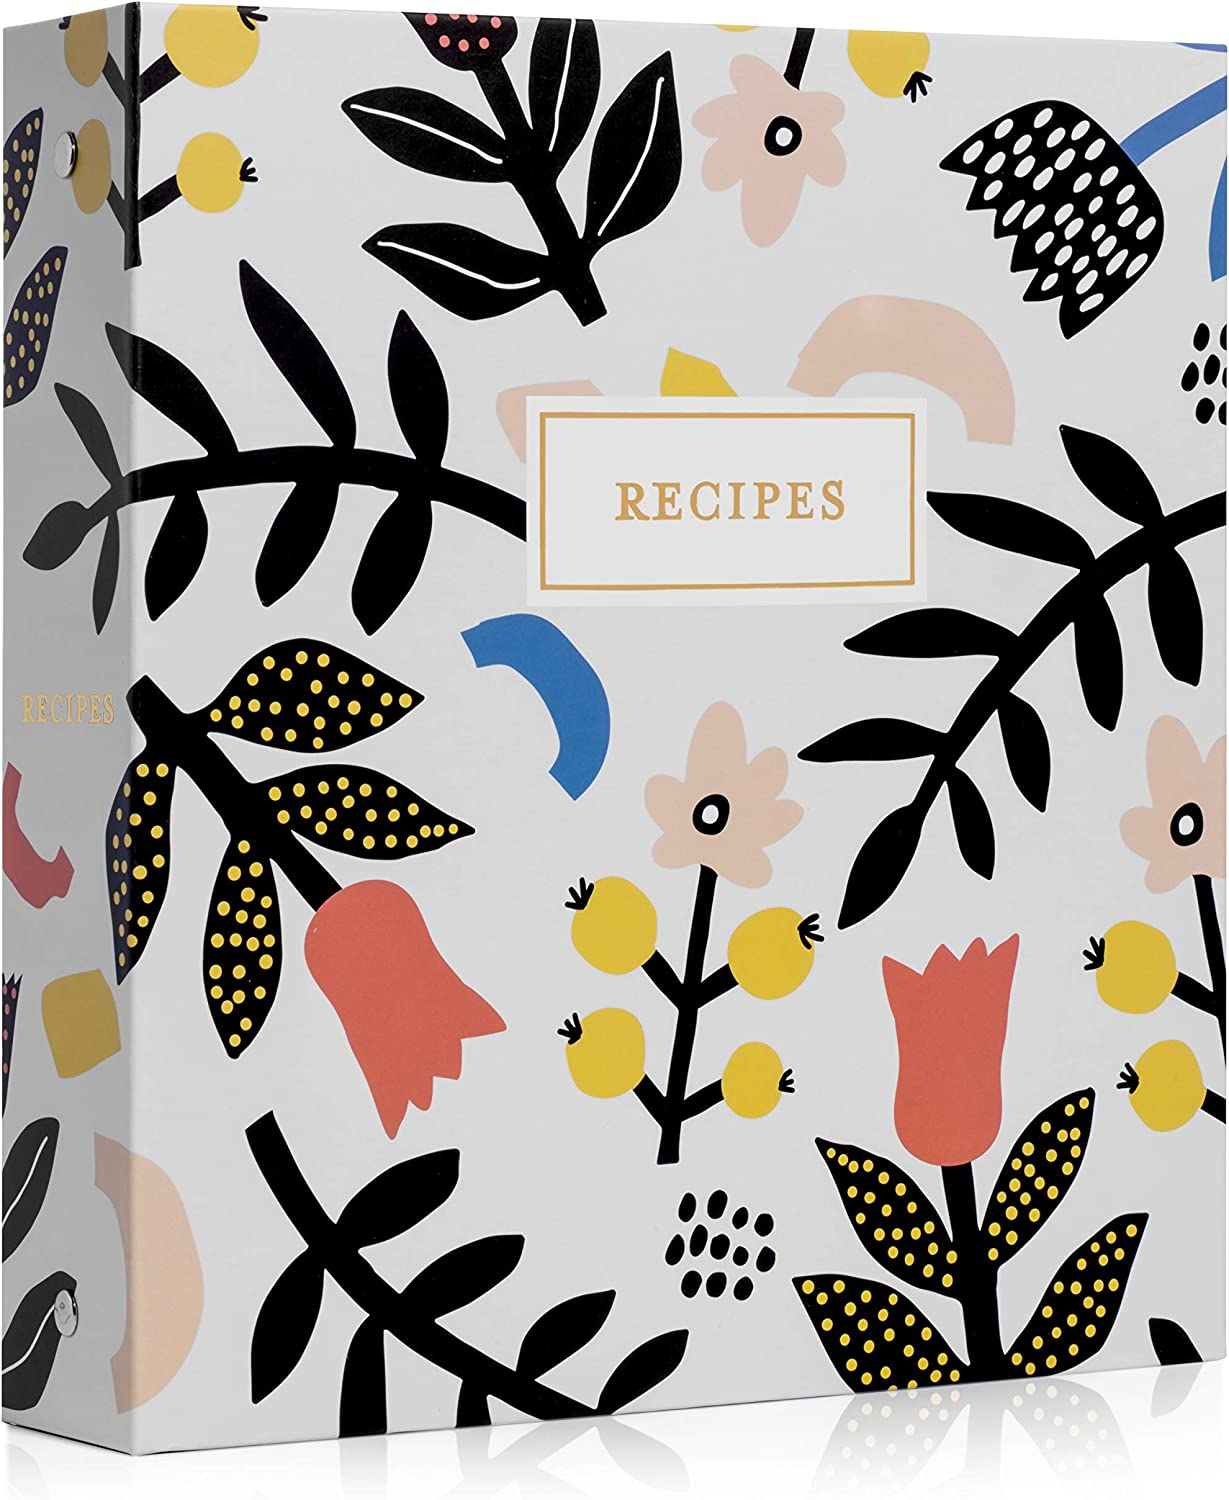 Jot & Mark Recipe Organizer 3 Ring Binder Set (Scandinavian Floral) | 50 Recipe Cards 4x6, Rainbow Full Page Dividers and Plastic Page Protectors